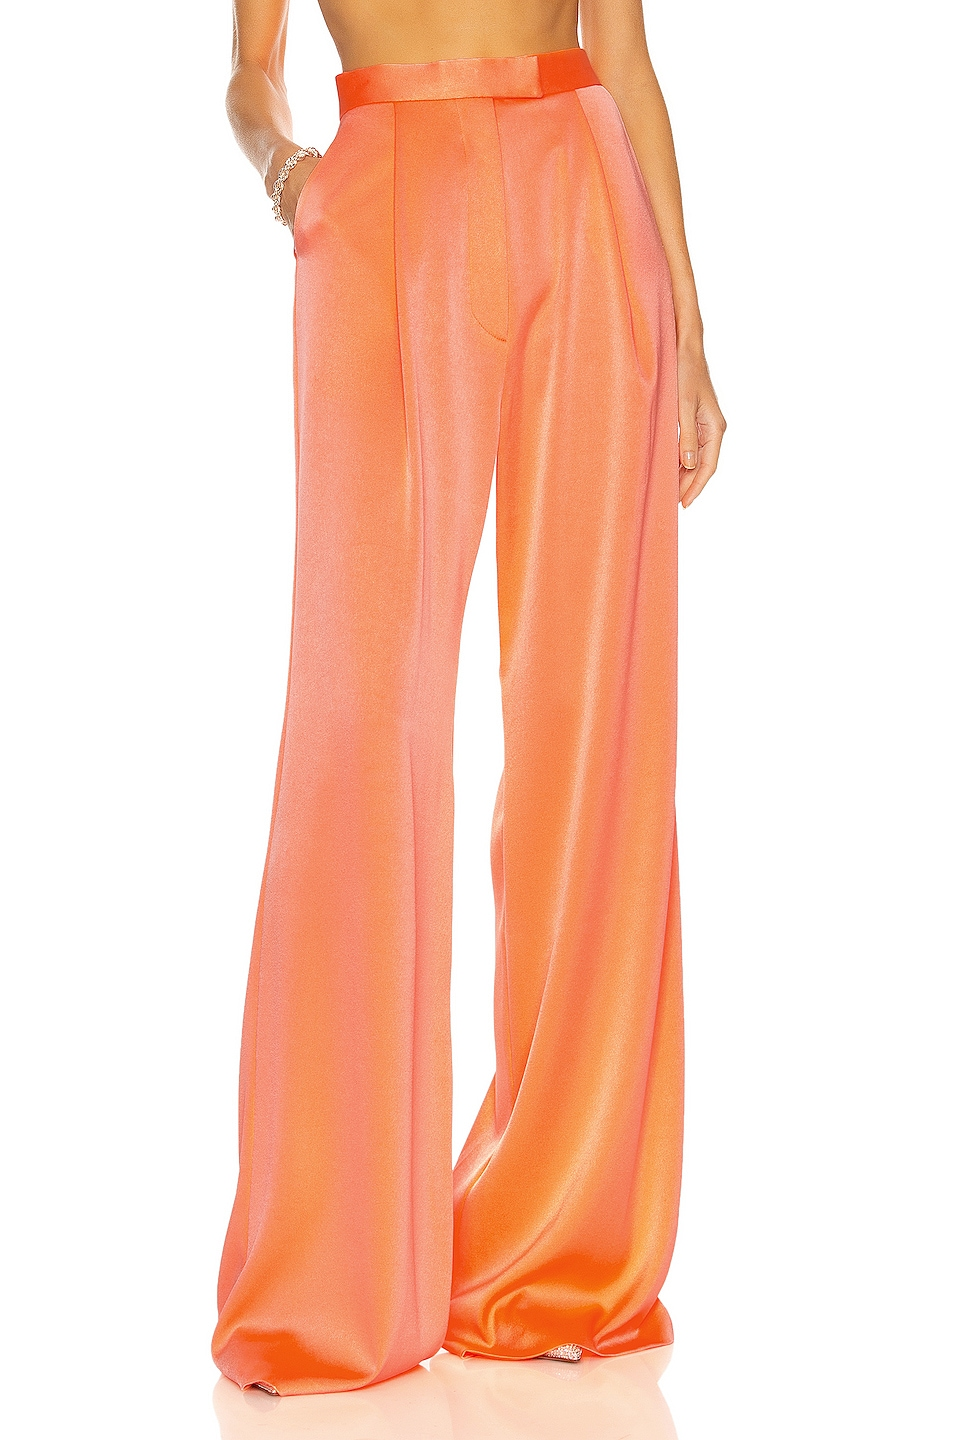 Image 1 of Alex Perry Malone Pant in Coral